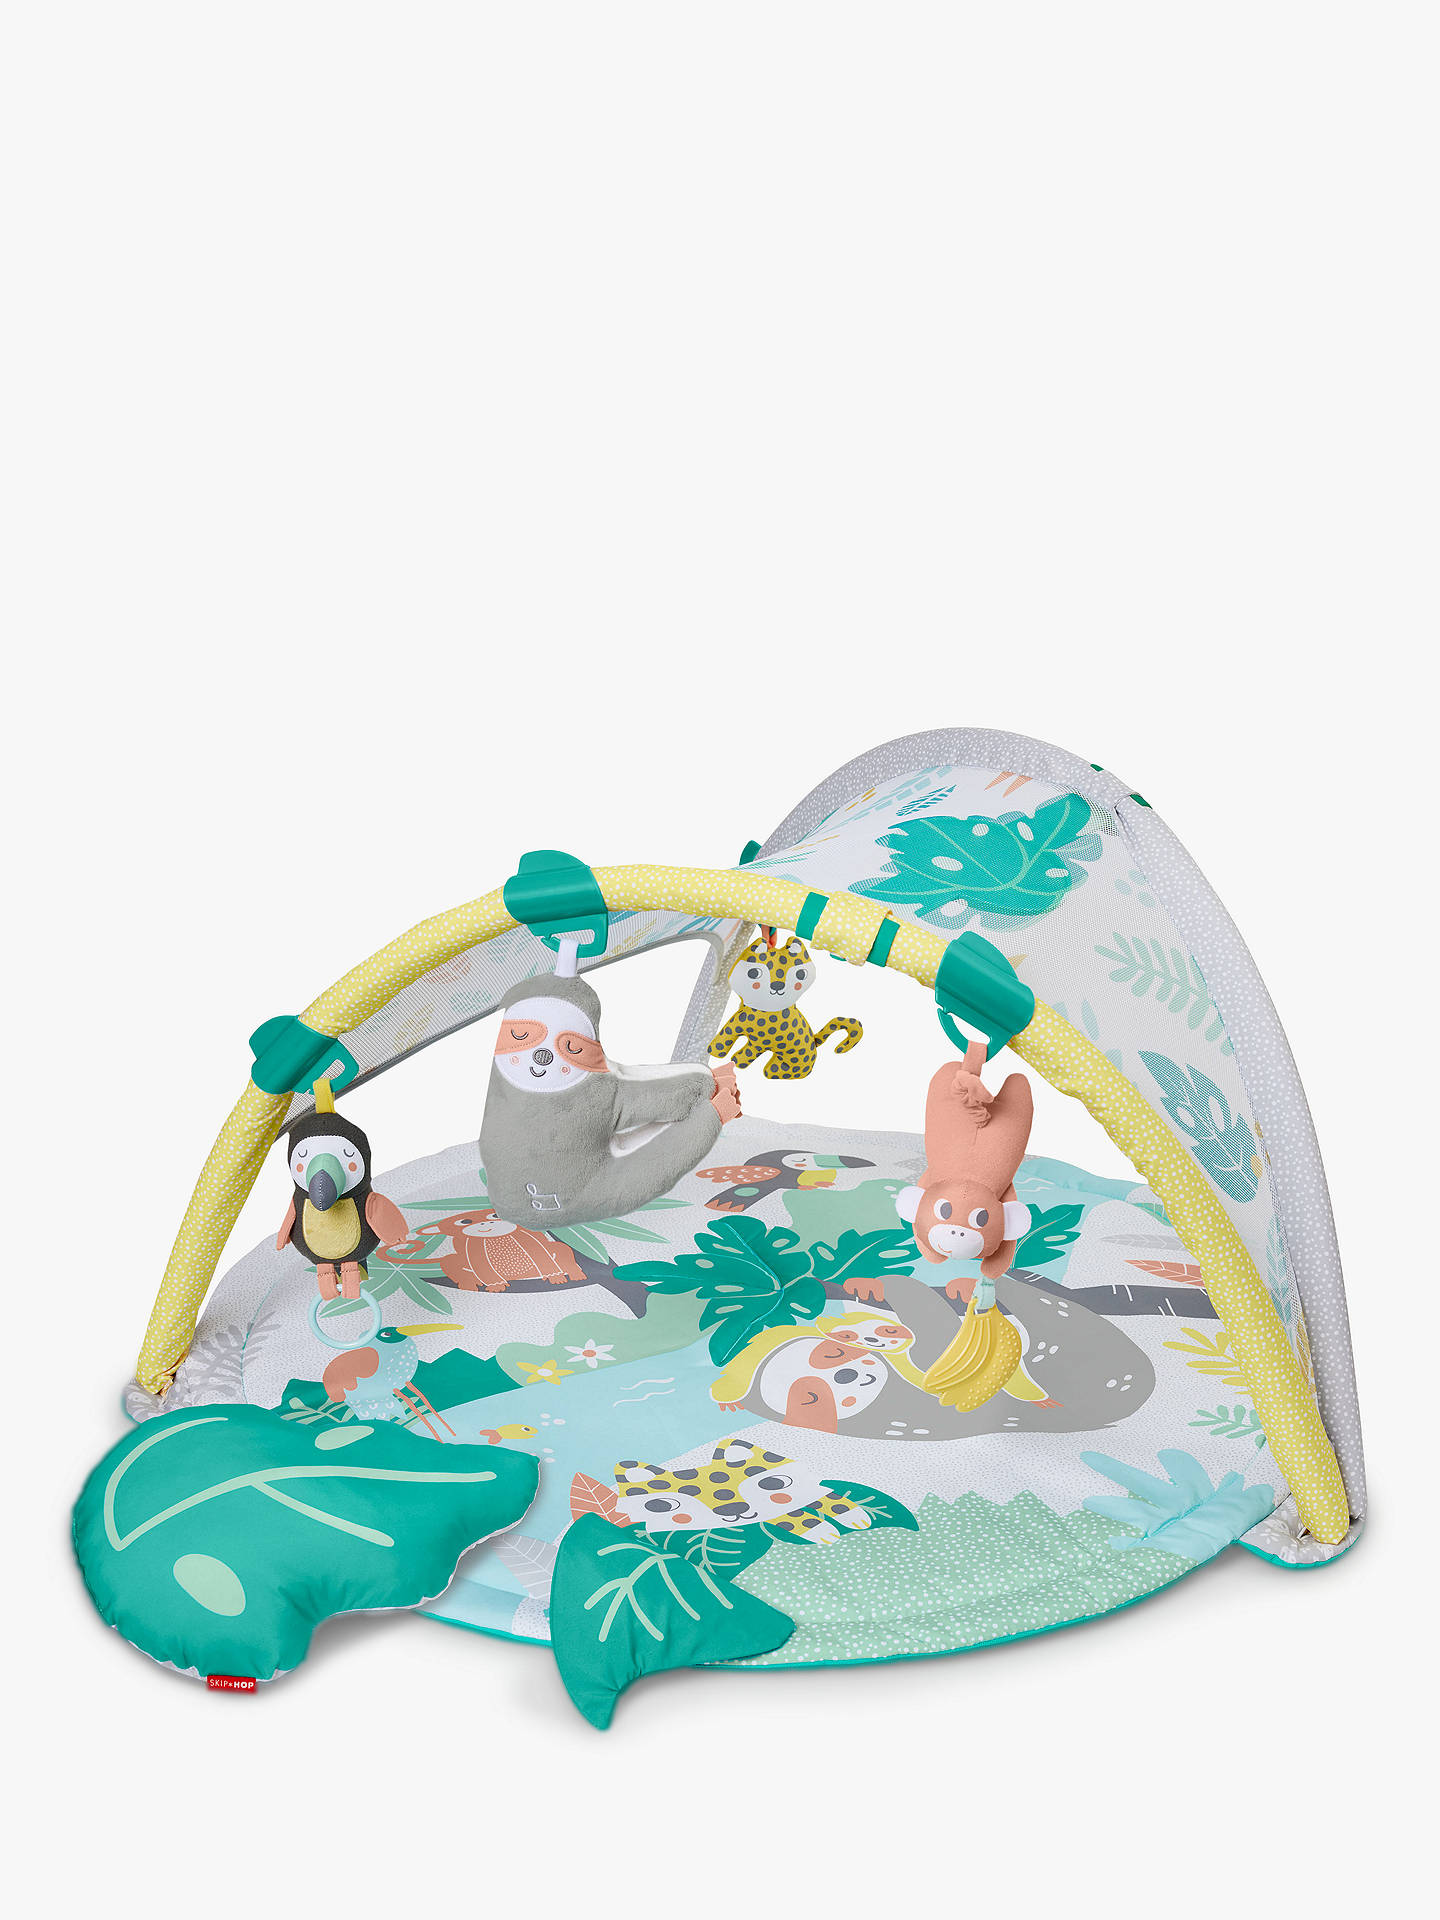 Buy Skip Hop Tropical Paradise Activity Gym Online at johnlewis.com